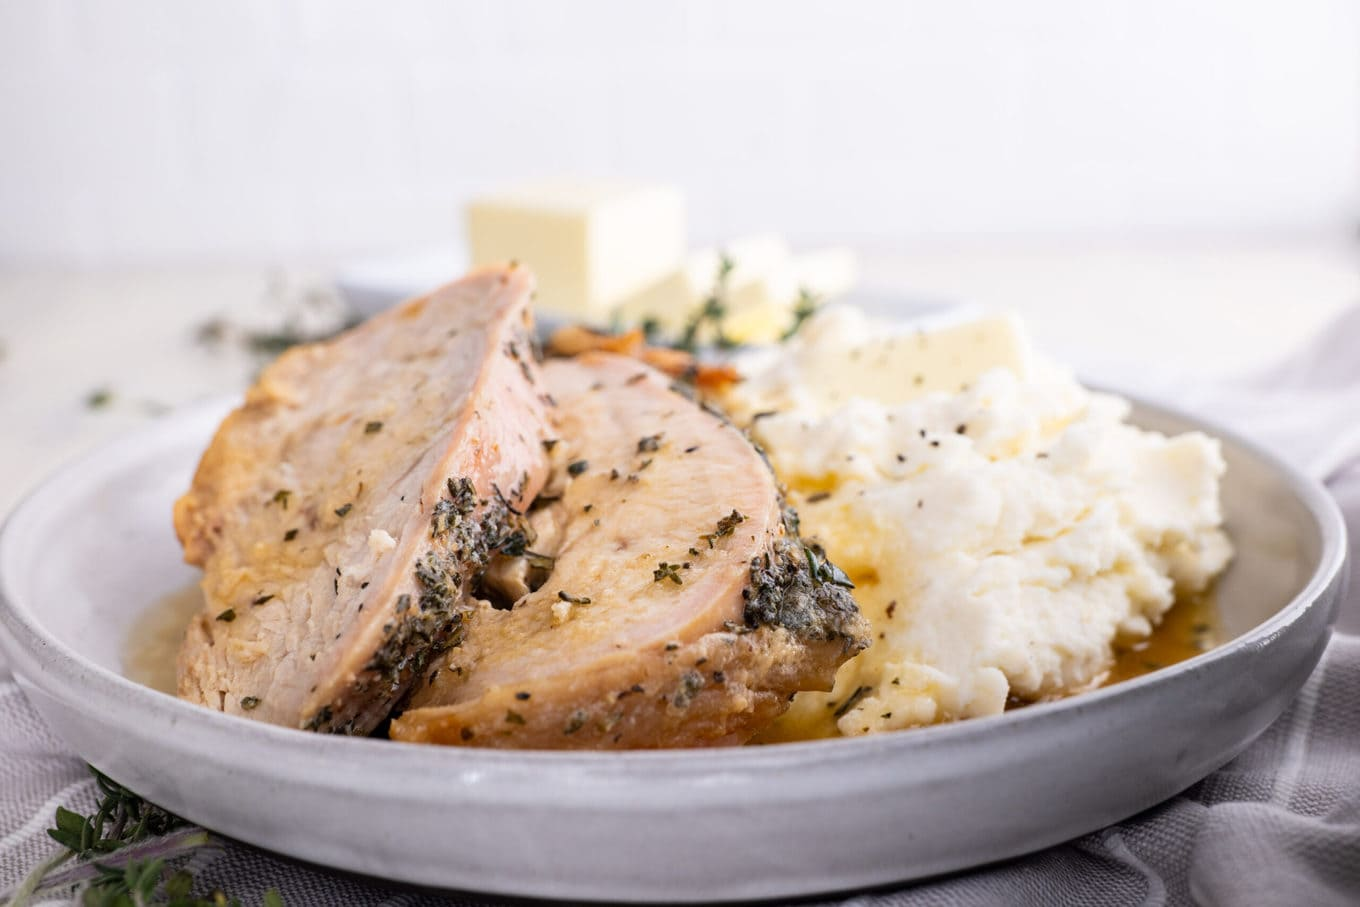 Roasted Turkey Breast on plate with mashed potatoes